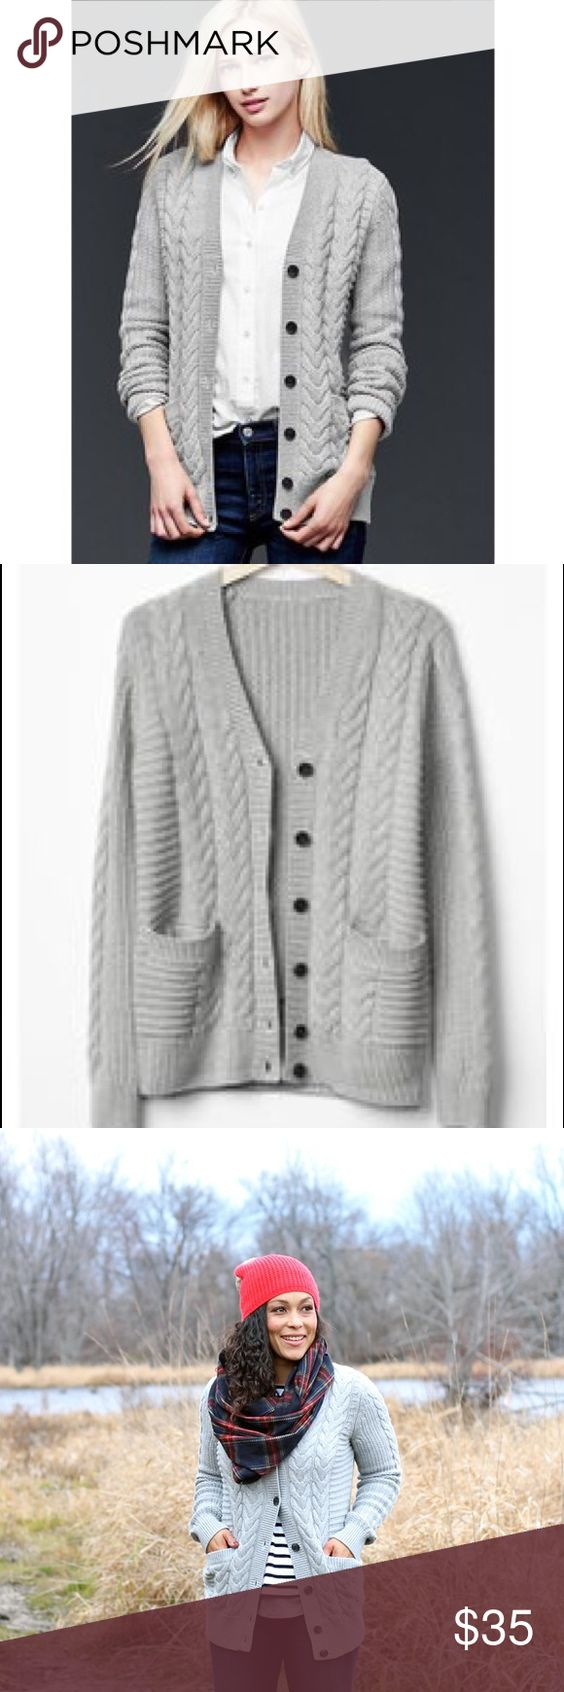 Gap honeycomb cable knit cardigan | To be, Sweater cardigan and Cable